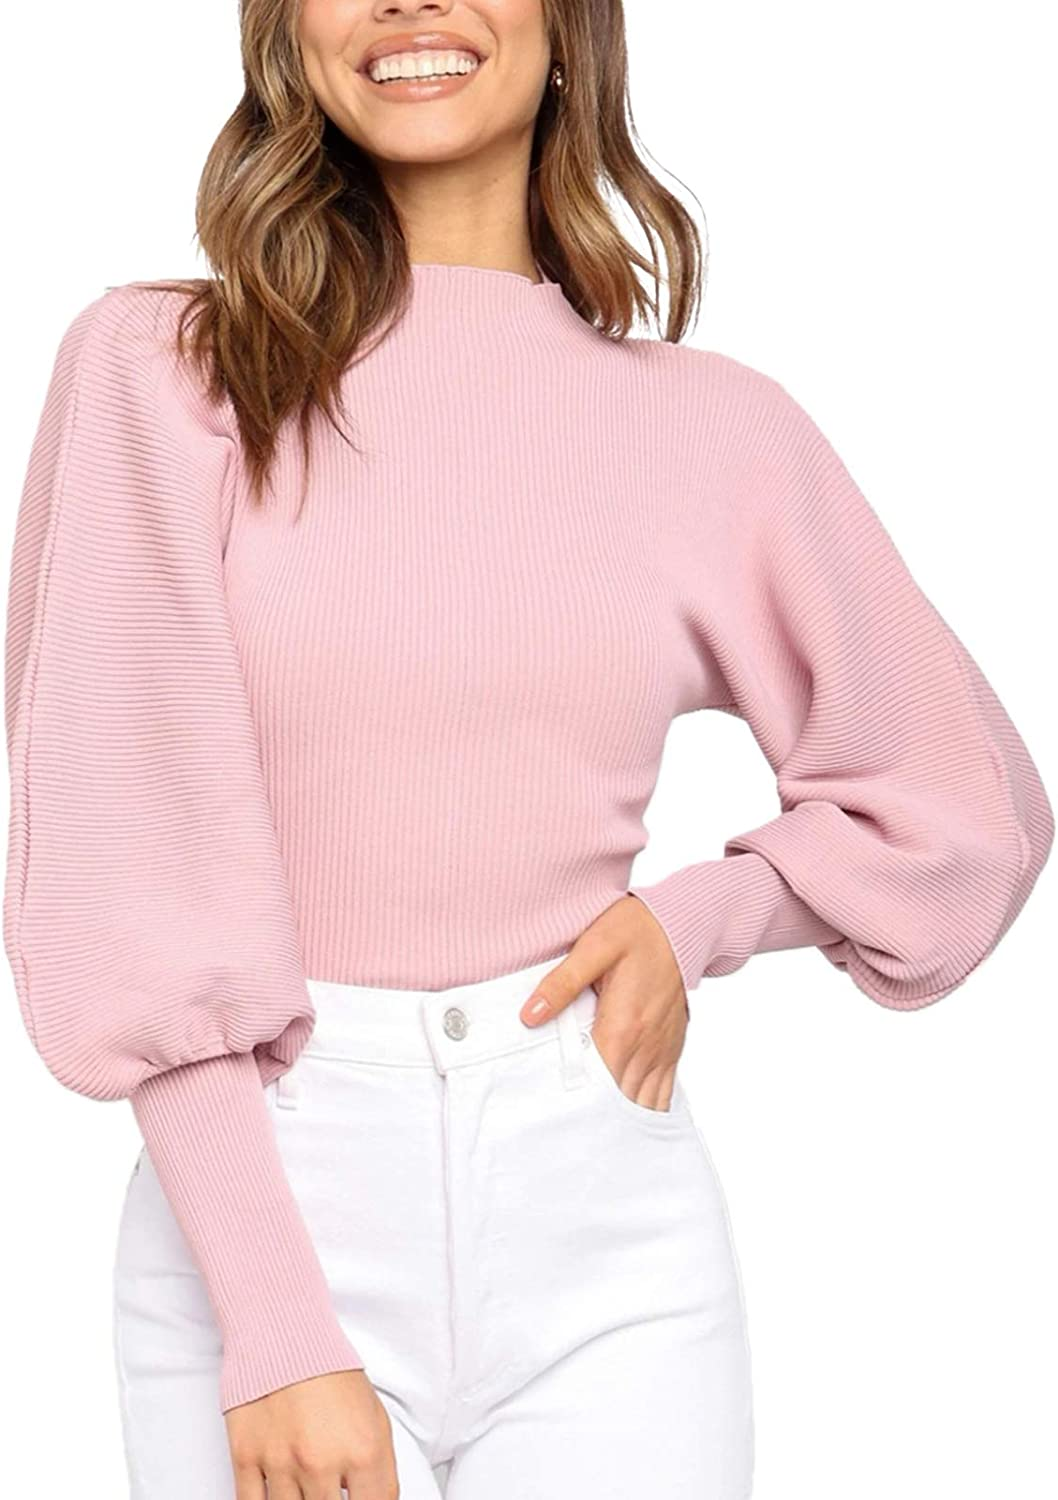 Woman Sweaters Mock Neck Lantern Batwing Long Puff Cuff Sleeve Knitted Slim Fit Cropped Short Pullover Sweaters Crop Tops